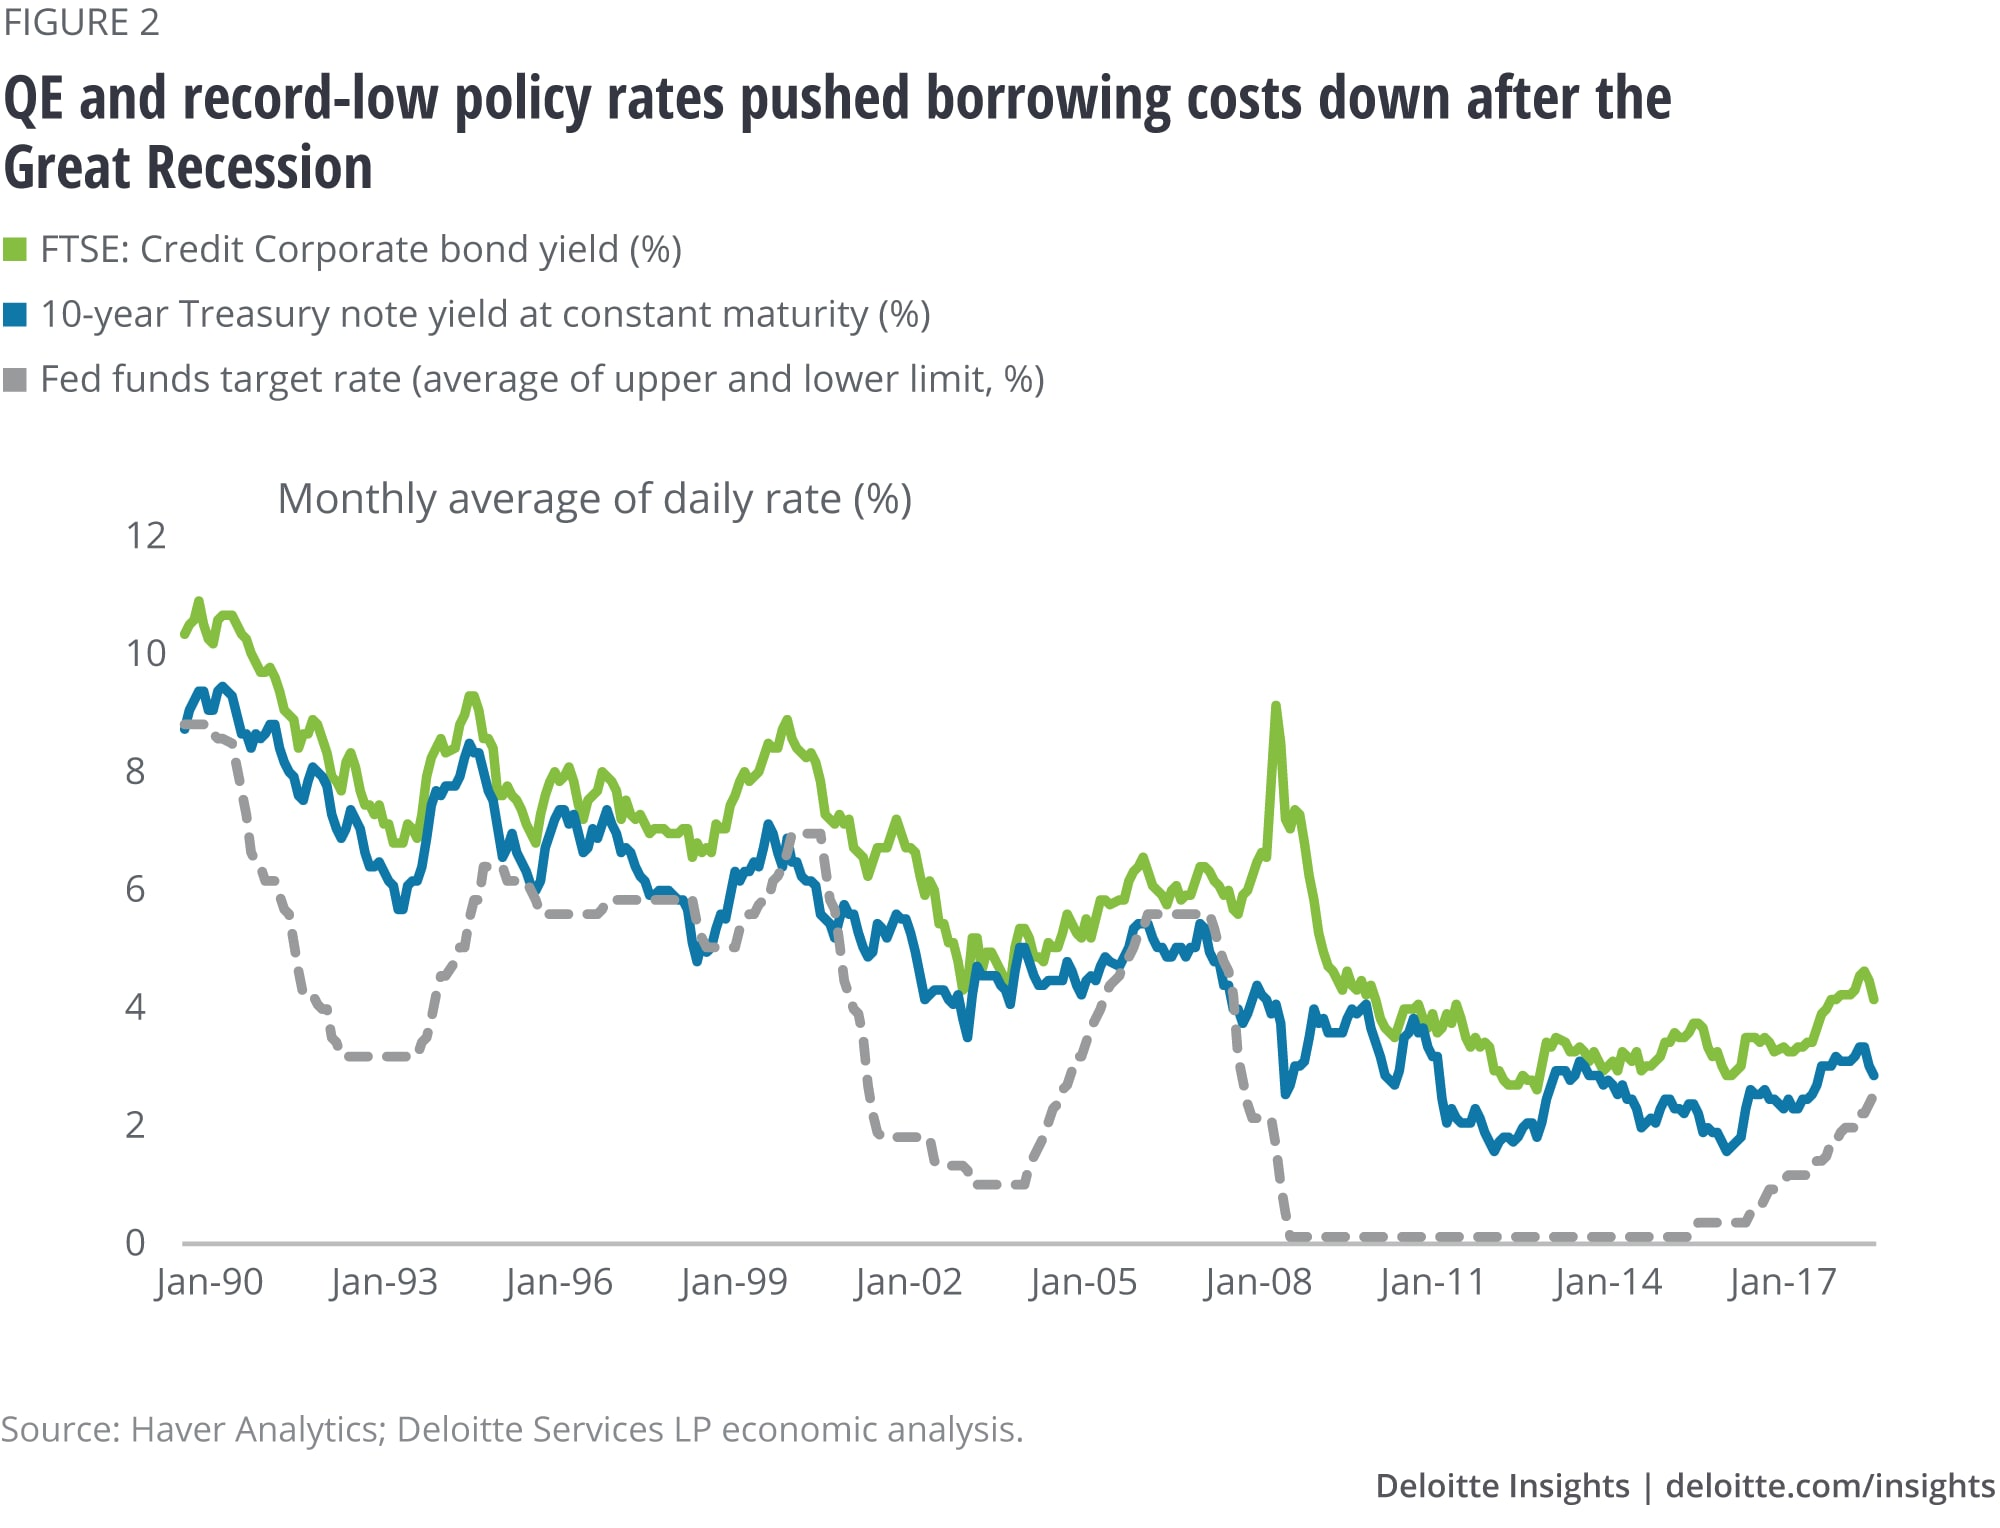 QE and record-low policy rates pushed borrowing costs down after the Great Recession